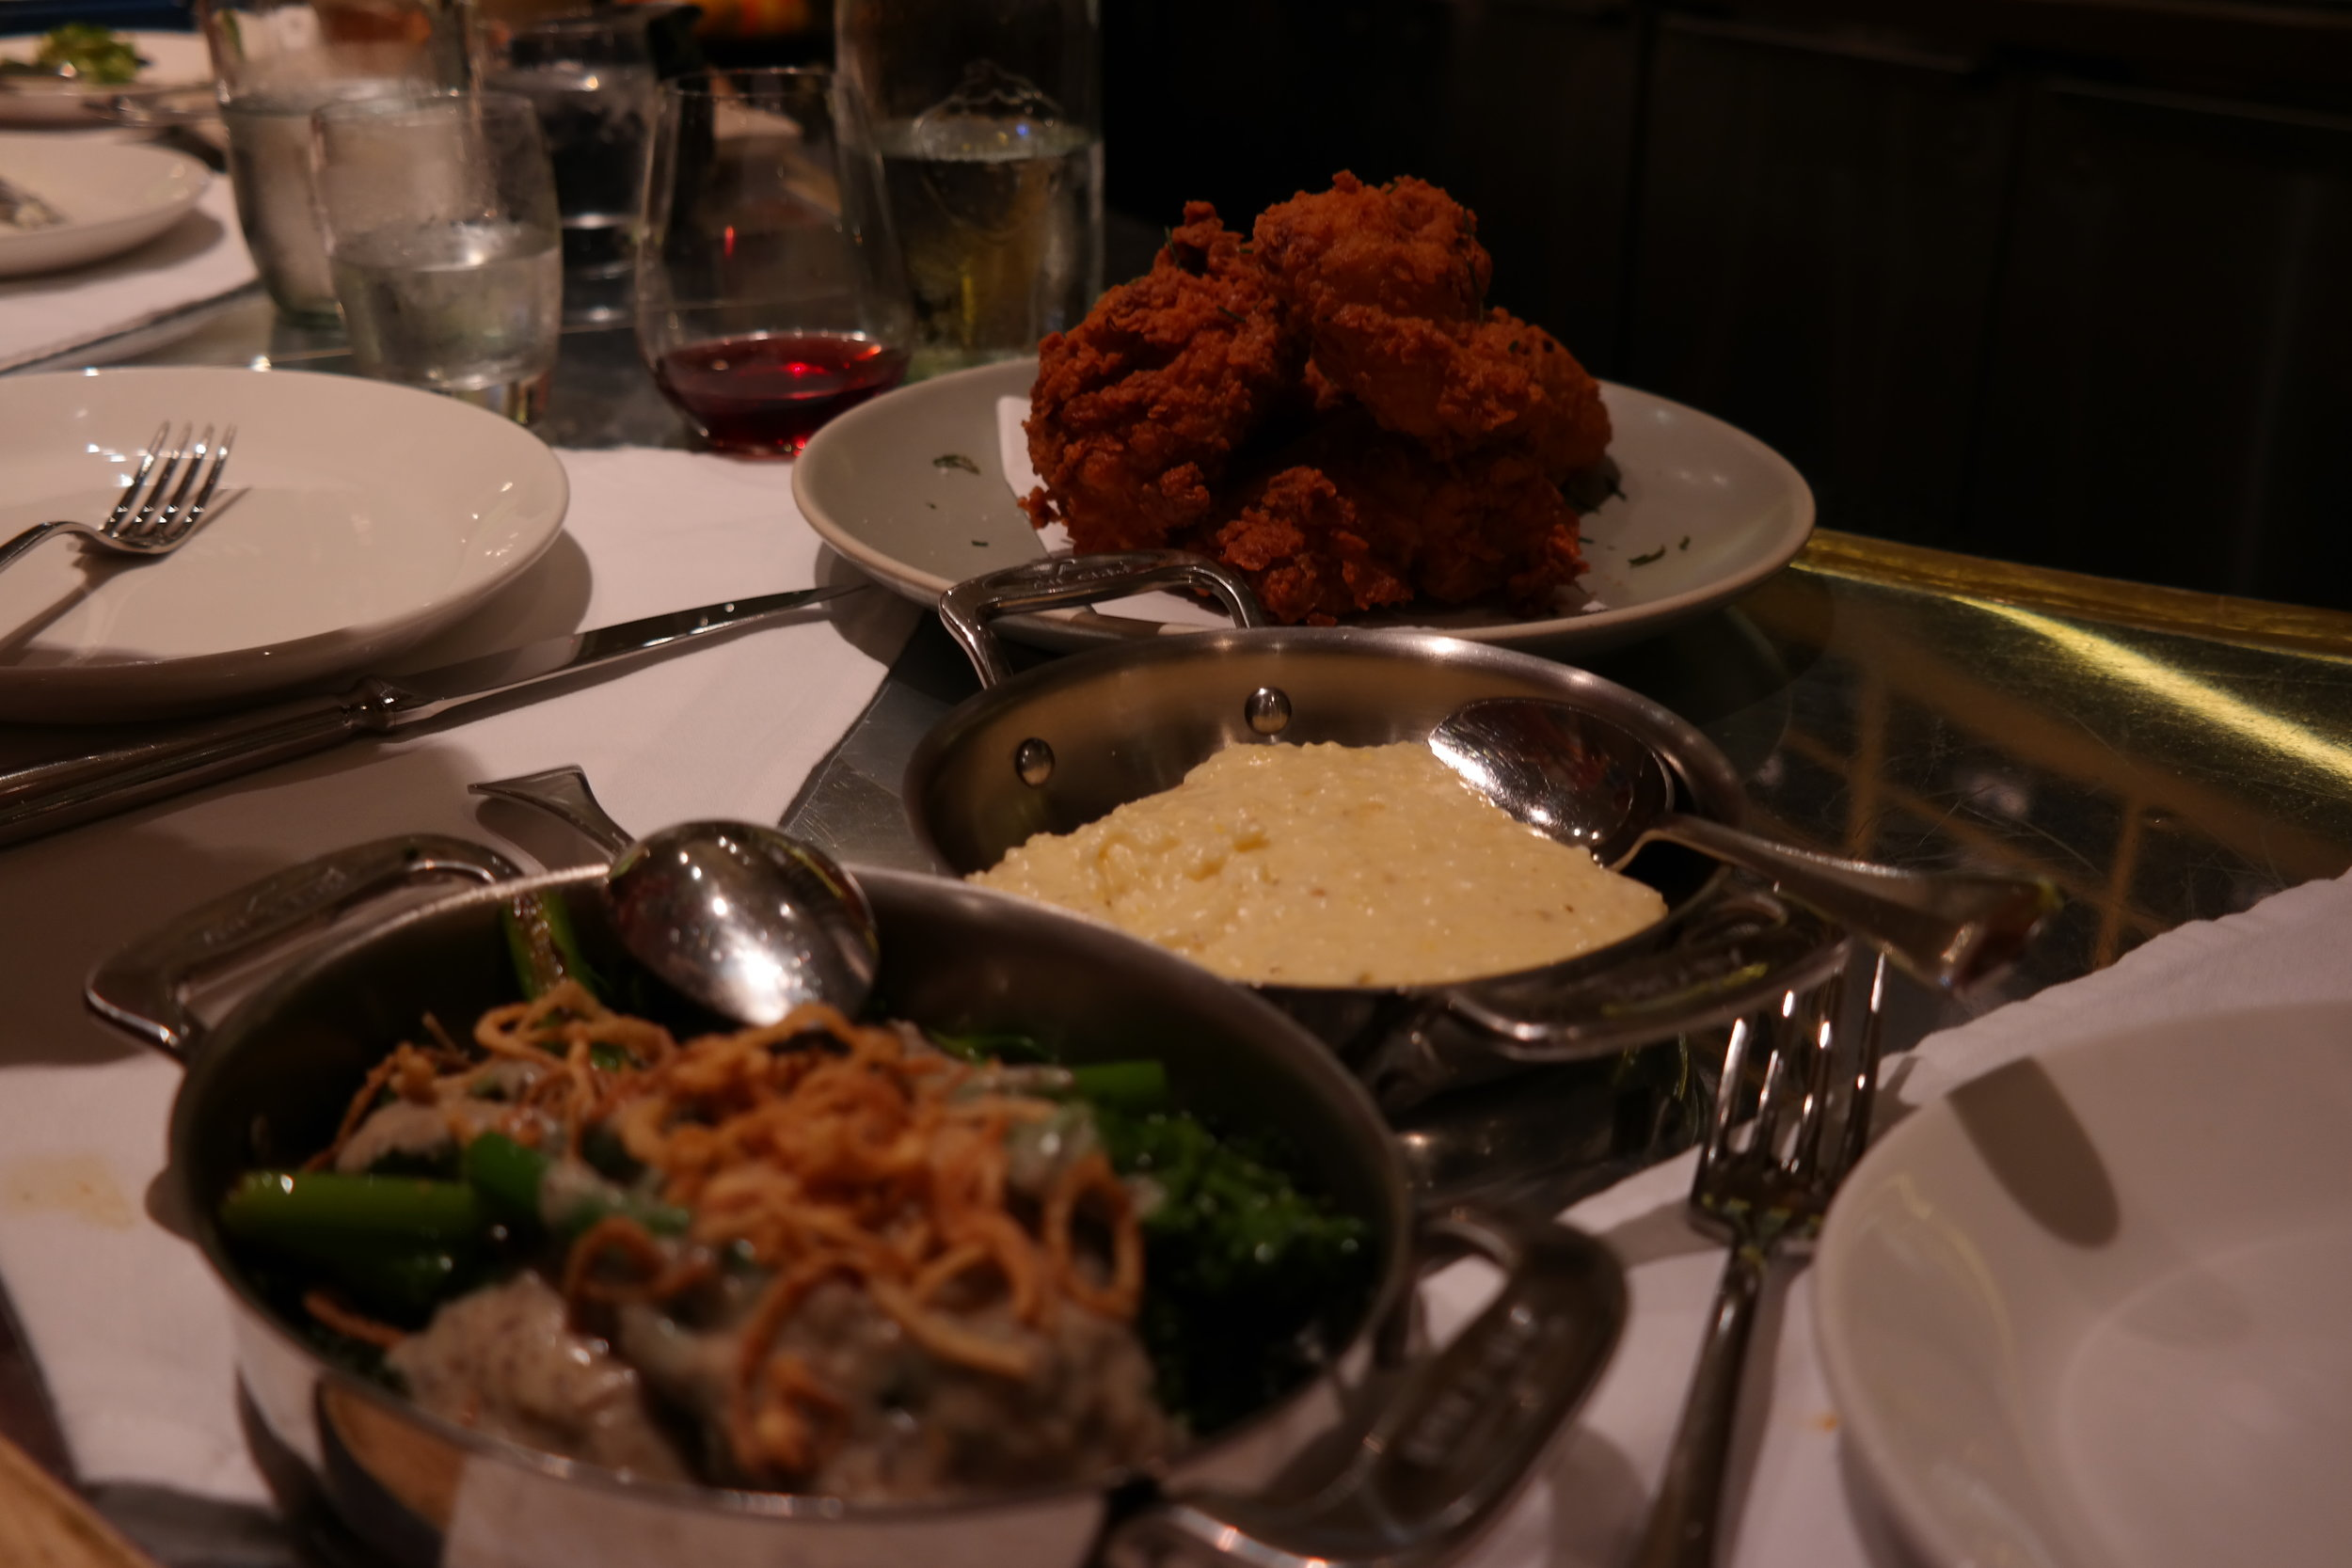 Buttermilk fried Chicken with cheddar grits and green bean casserole